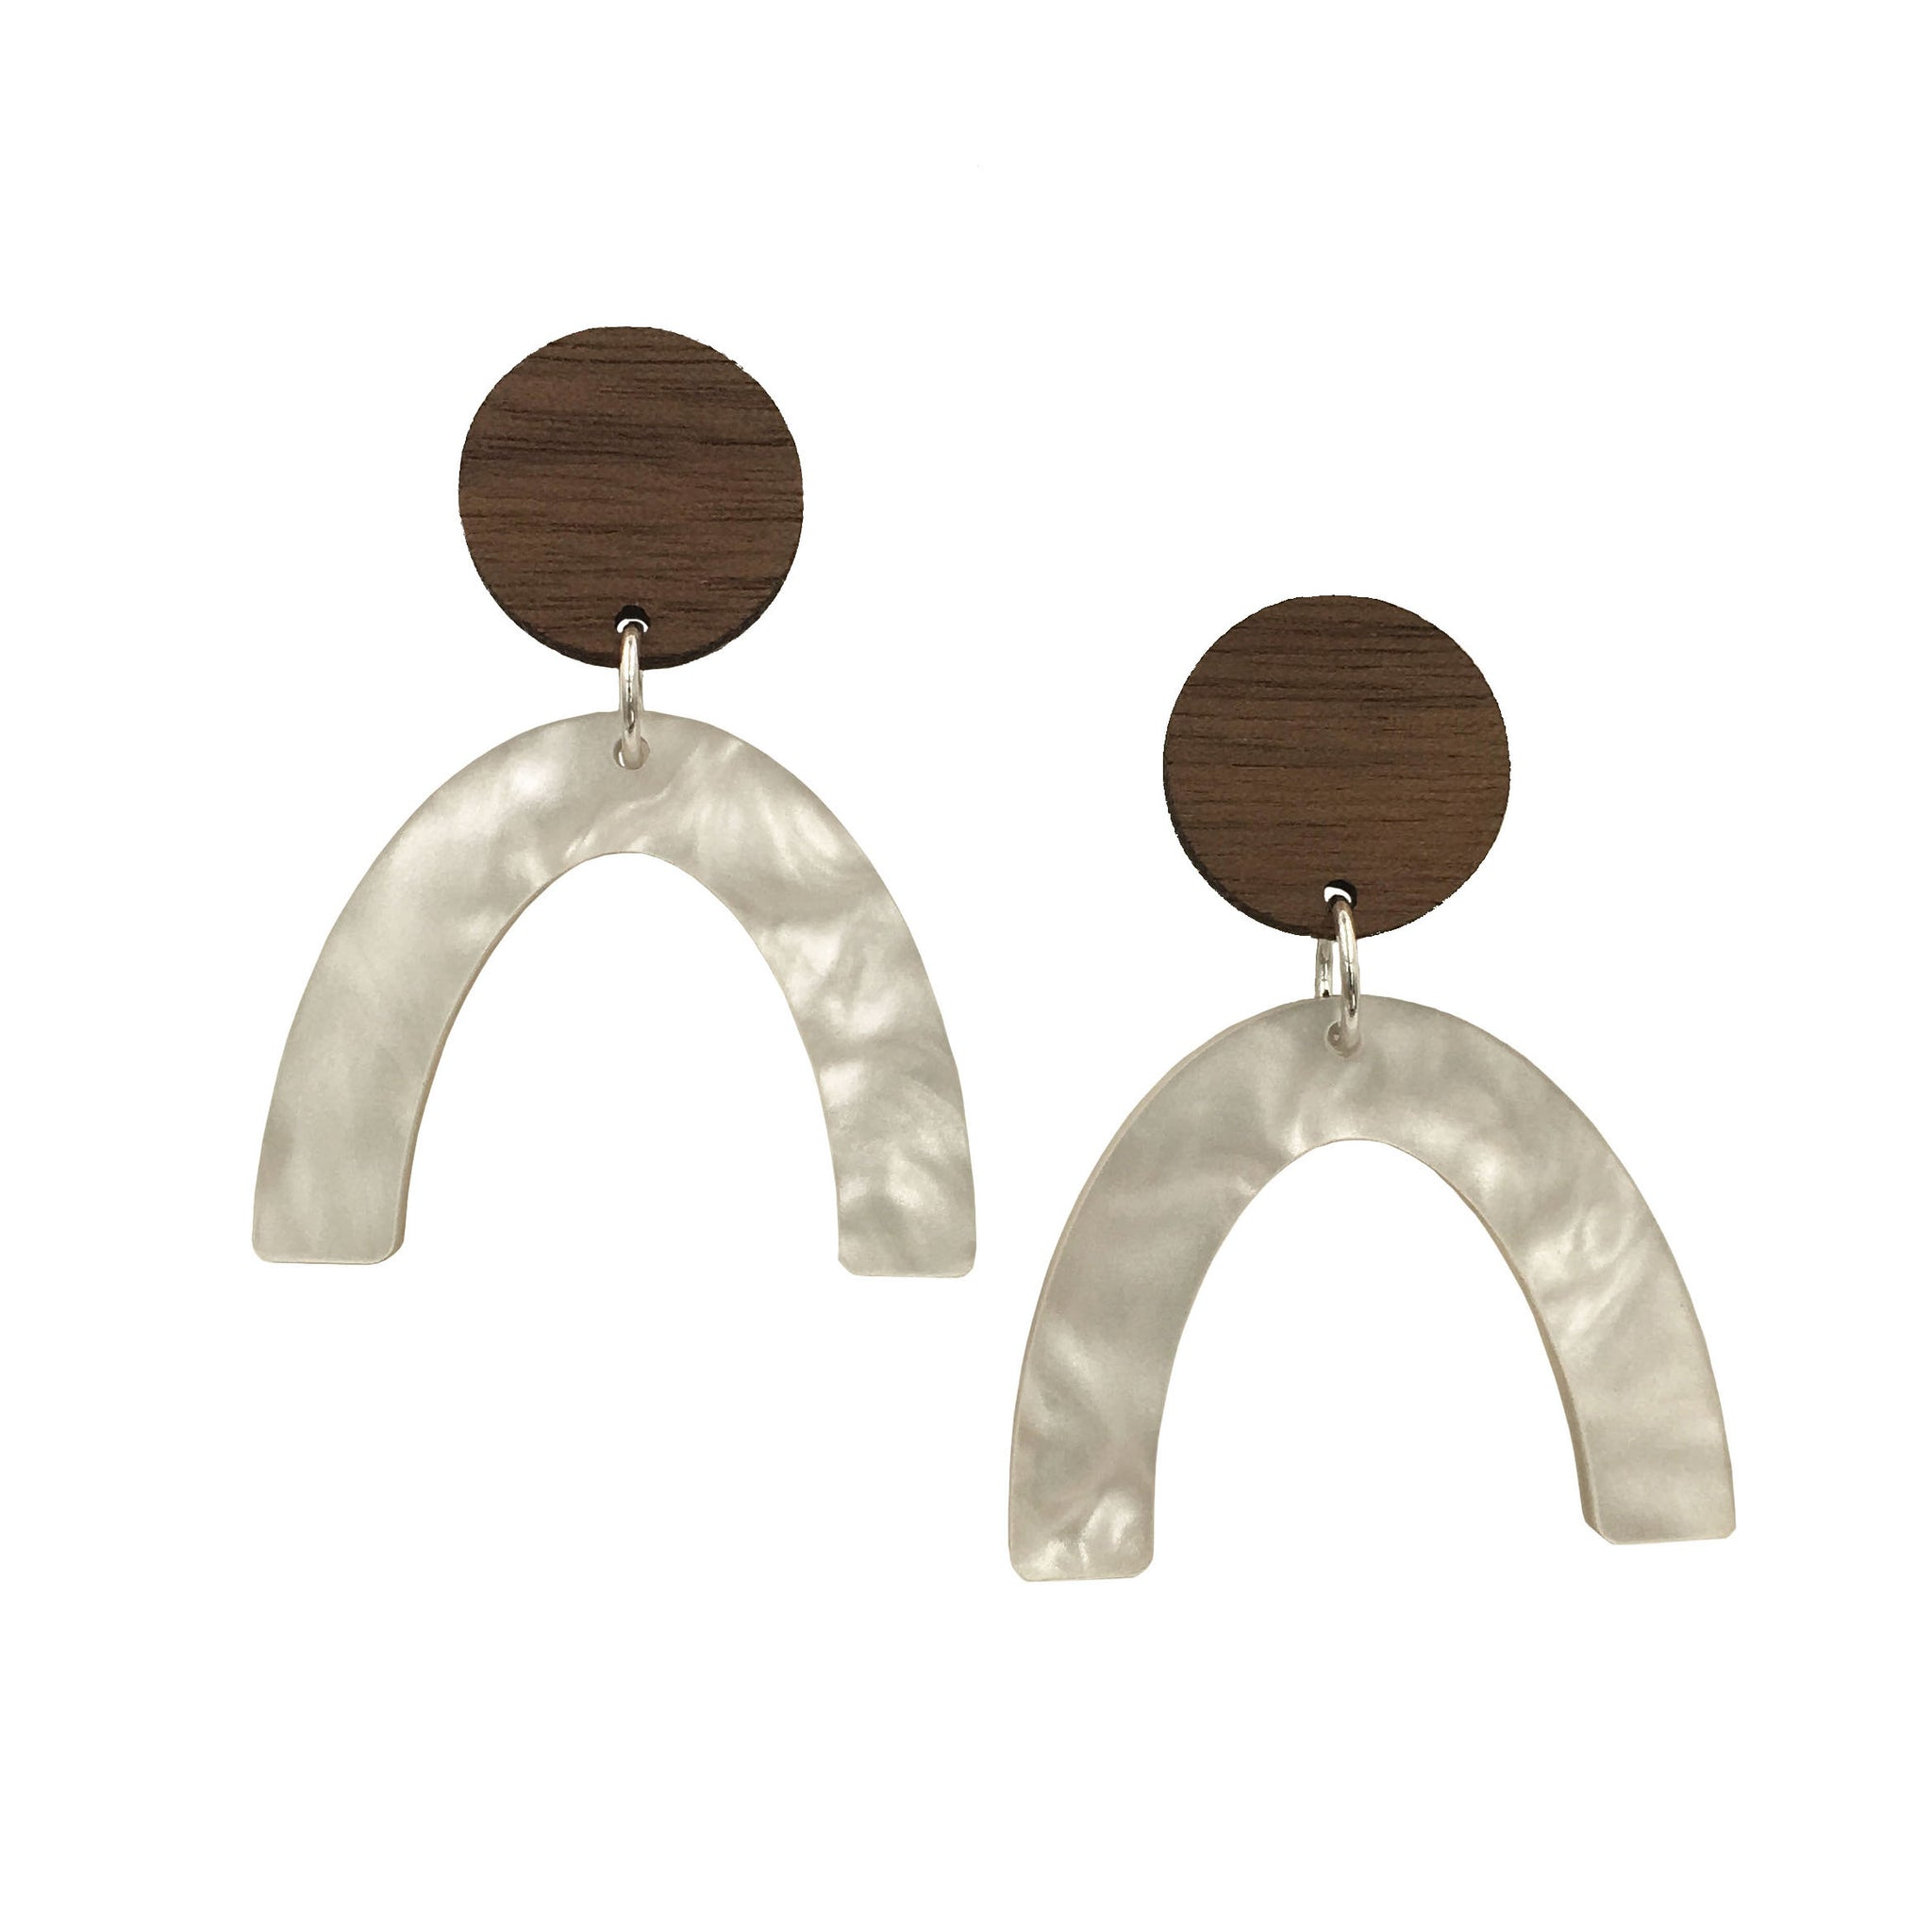 Walnut Wood and Pearl Acrylic Celluloid Arch Dangle Stud Earrings - graceandwoodco